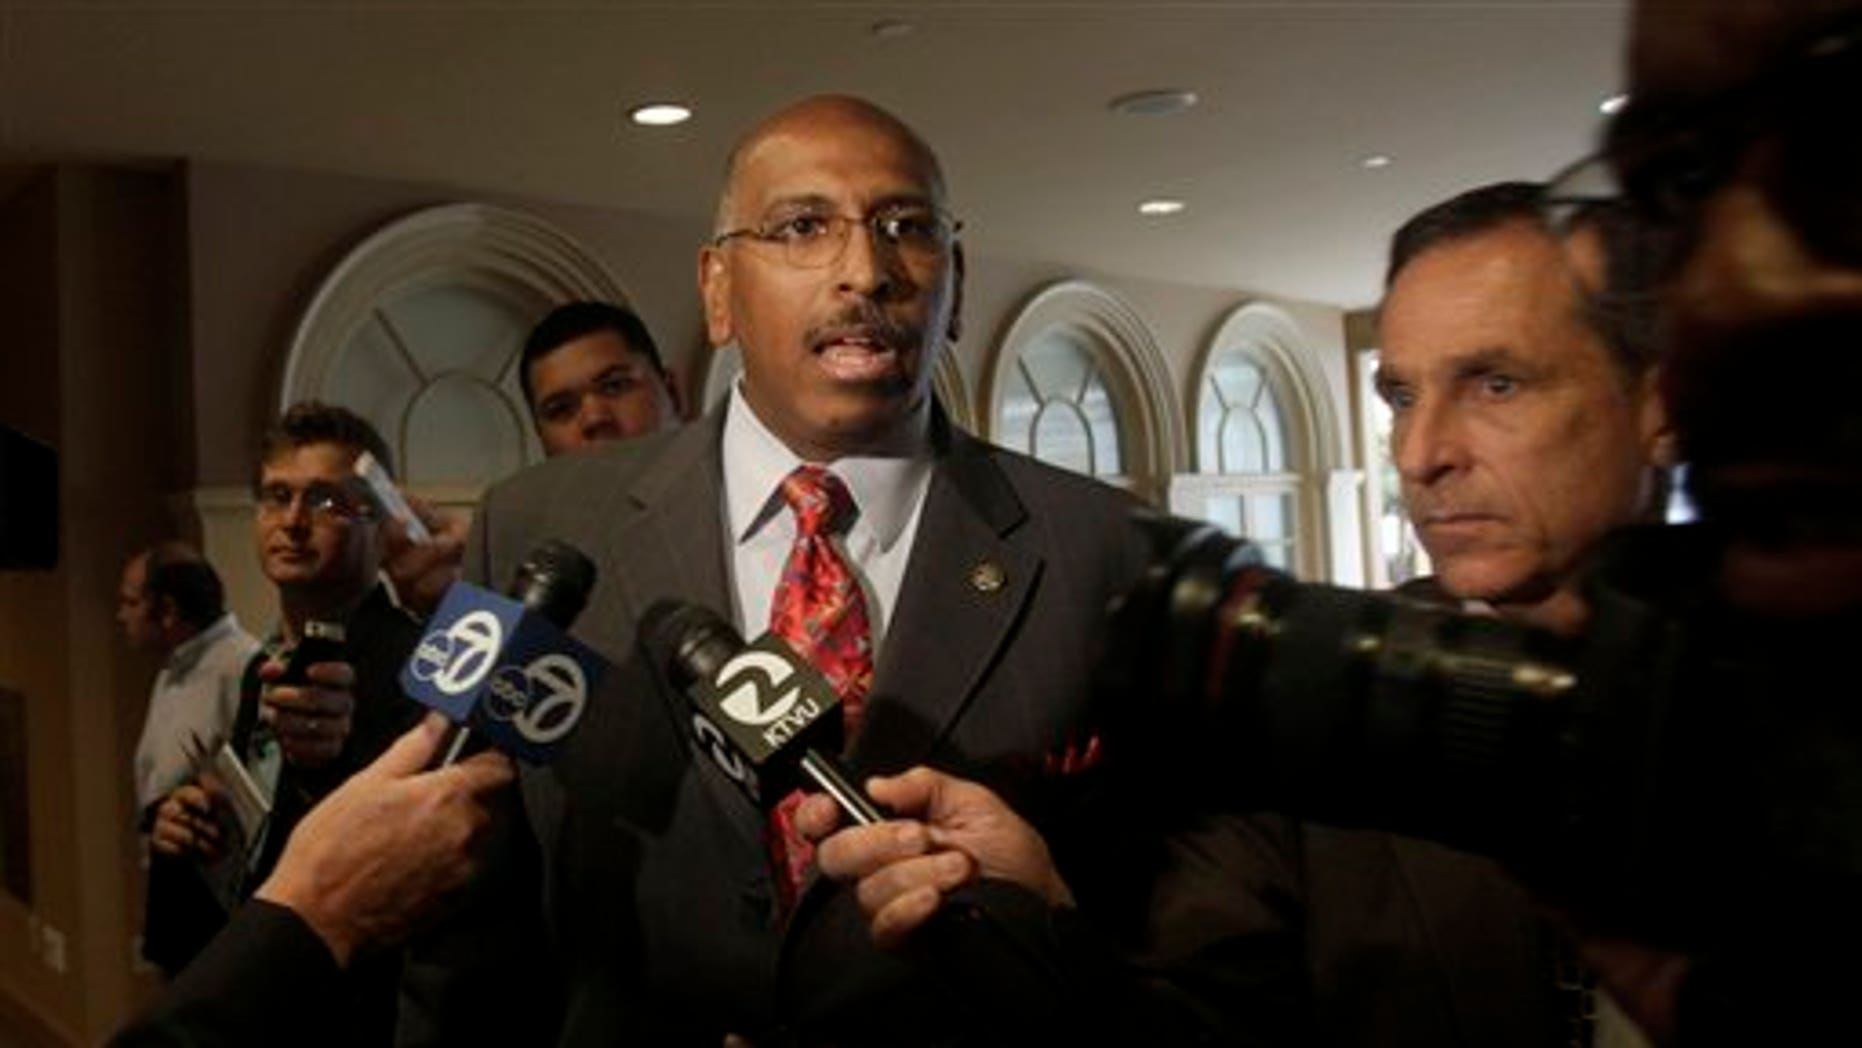 Republican National Committee Chairman Michael Steele answers questions before speaking to the San Francisco Chamber of Commerce in San Francisco June 24. (AP Photo)